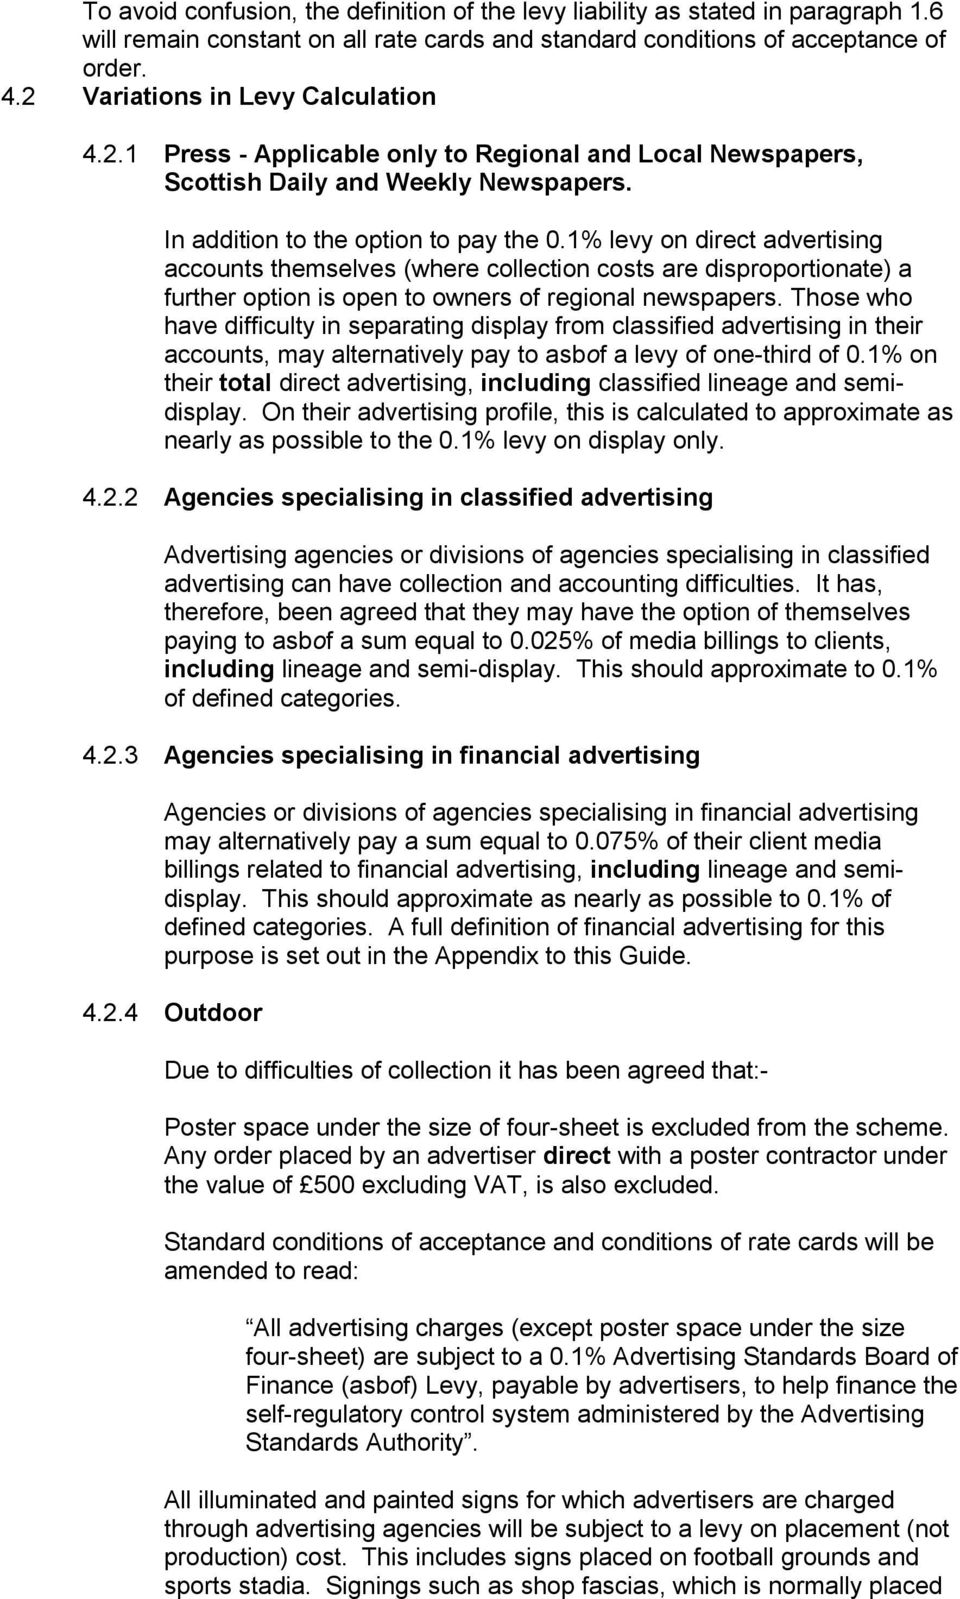 asbof: The Advertising Standards Board of Finance Guide to